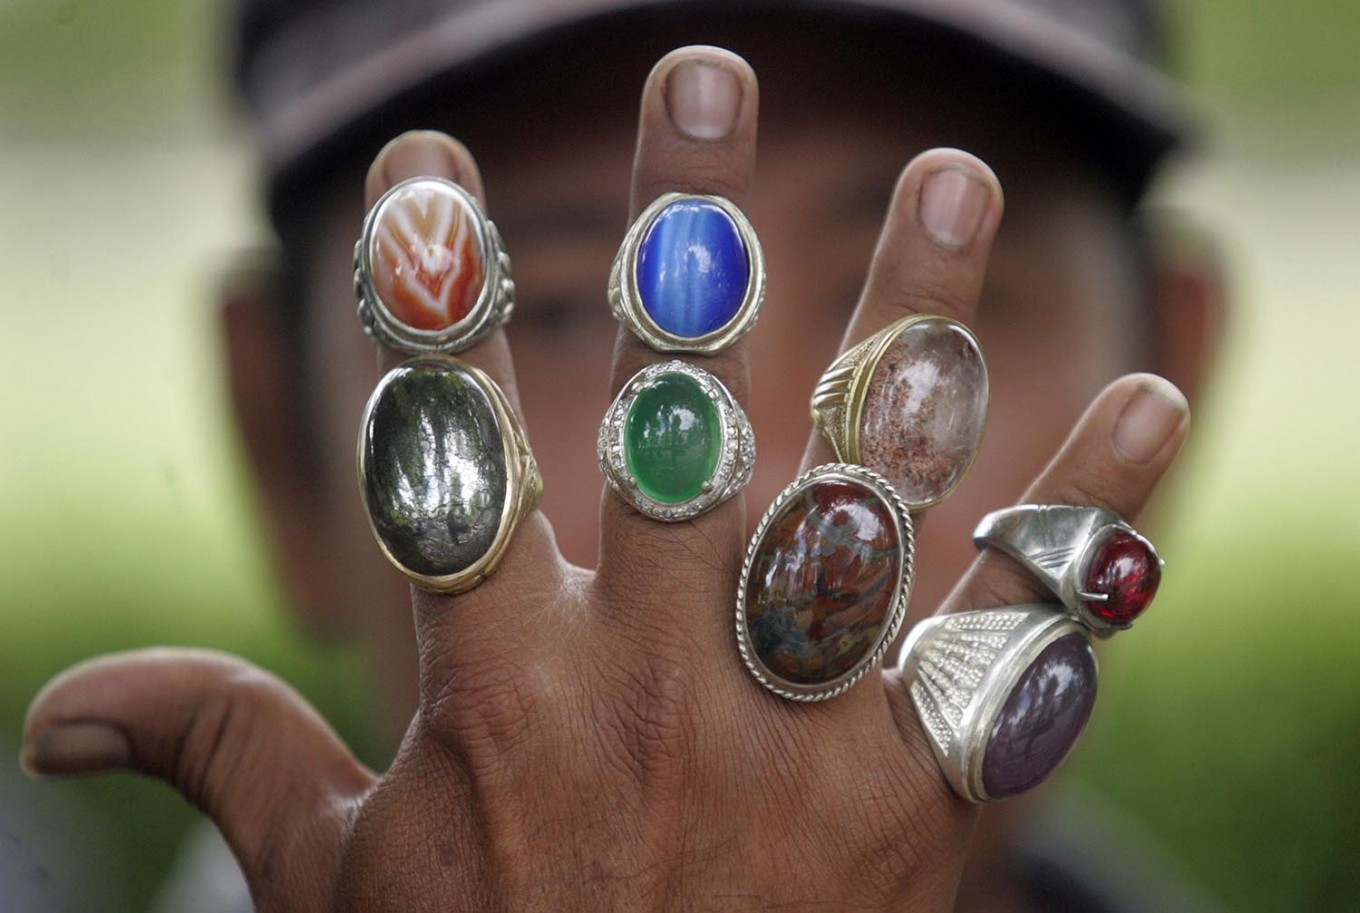 The gemstones are sold between Rp 100,000 (US$7.26) and Rp 500,000 each. JP/Boy T. Harjanto